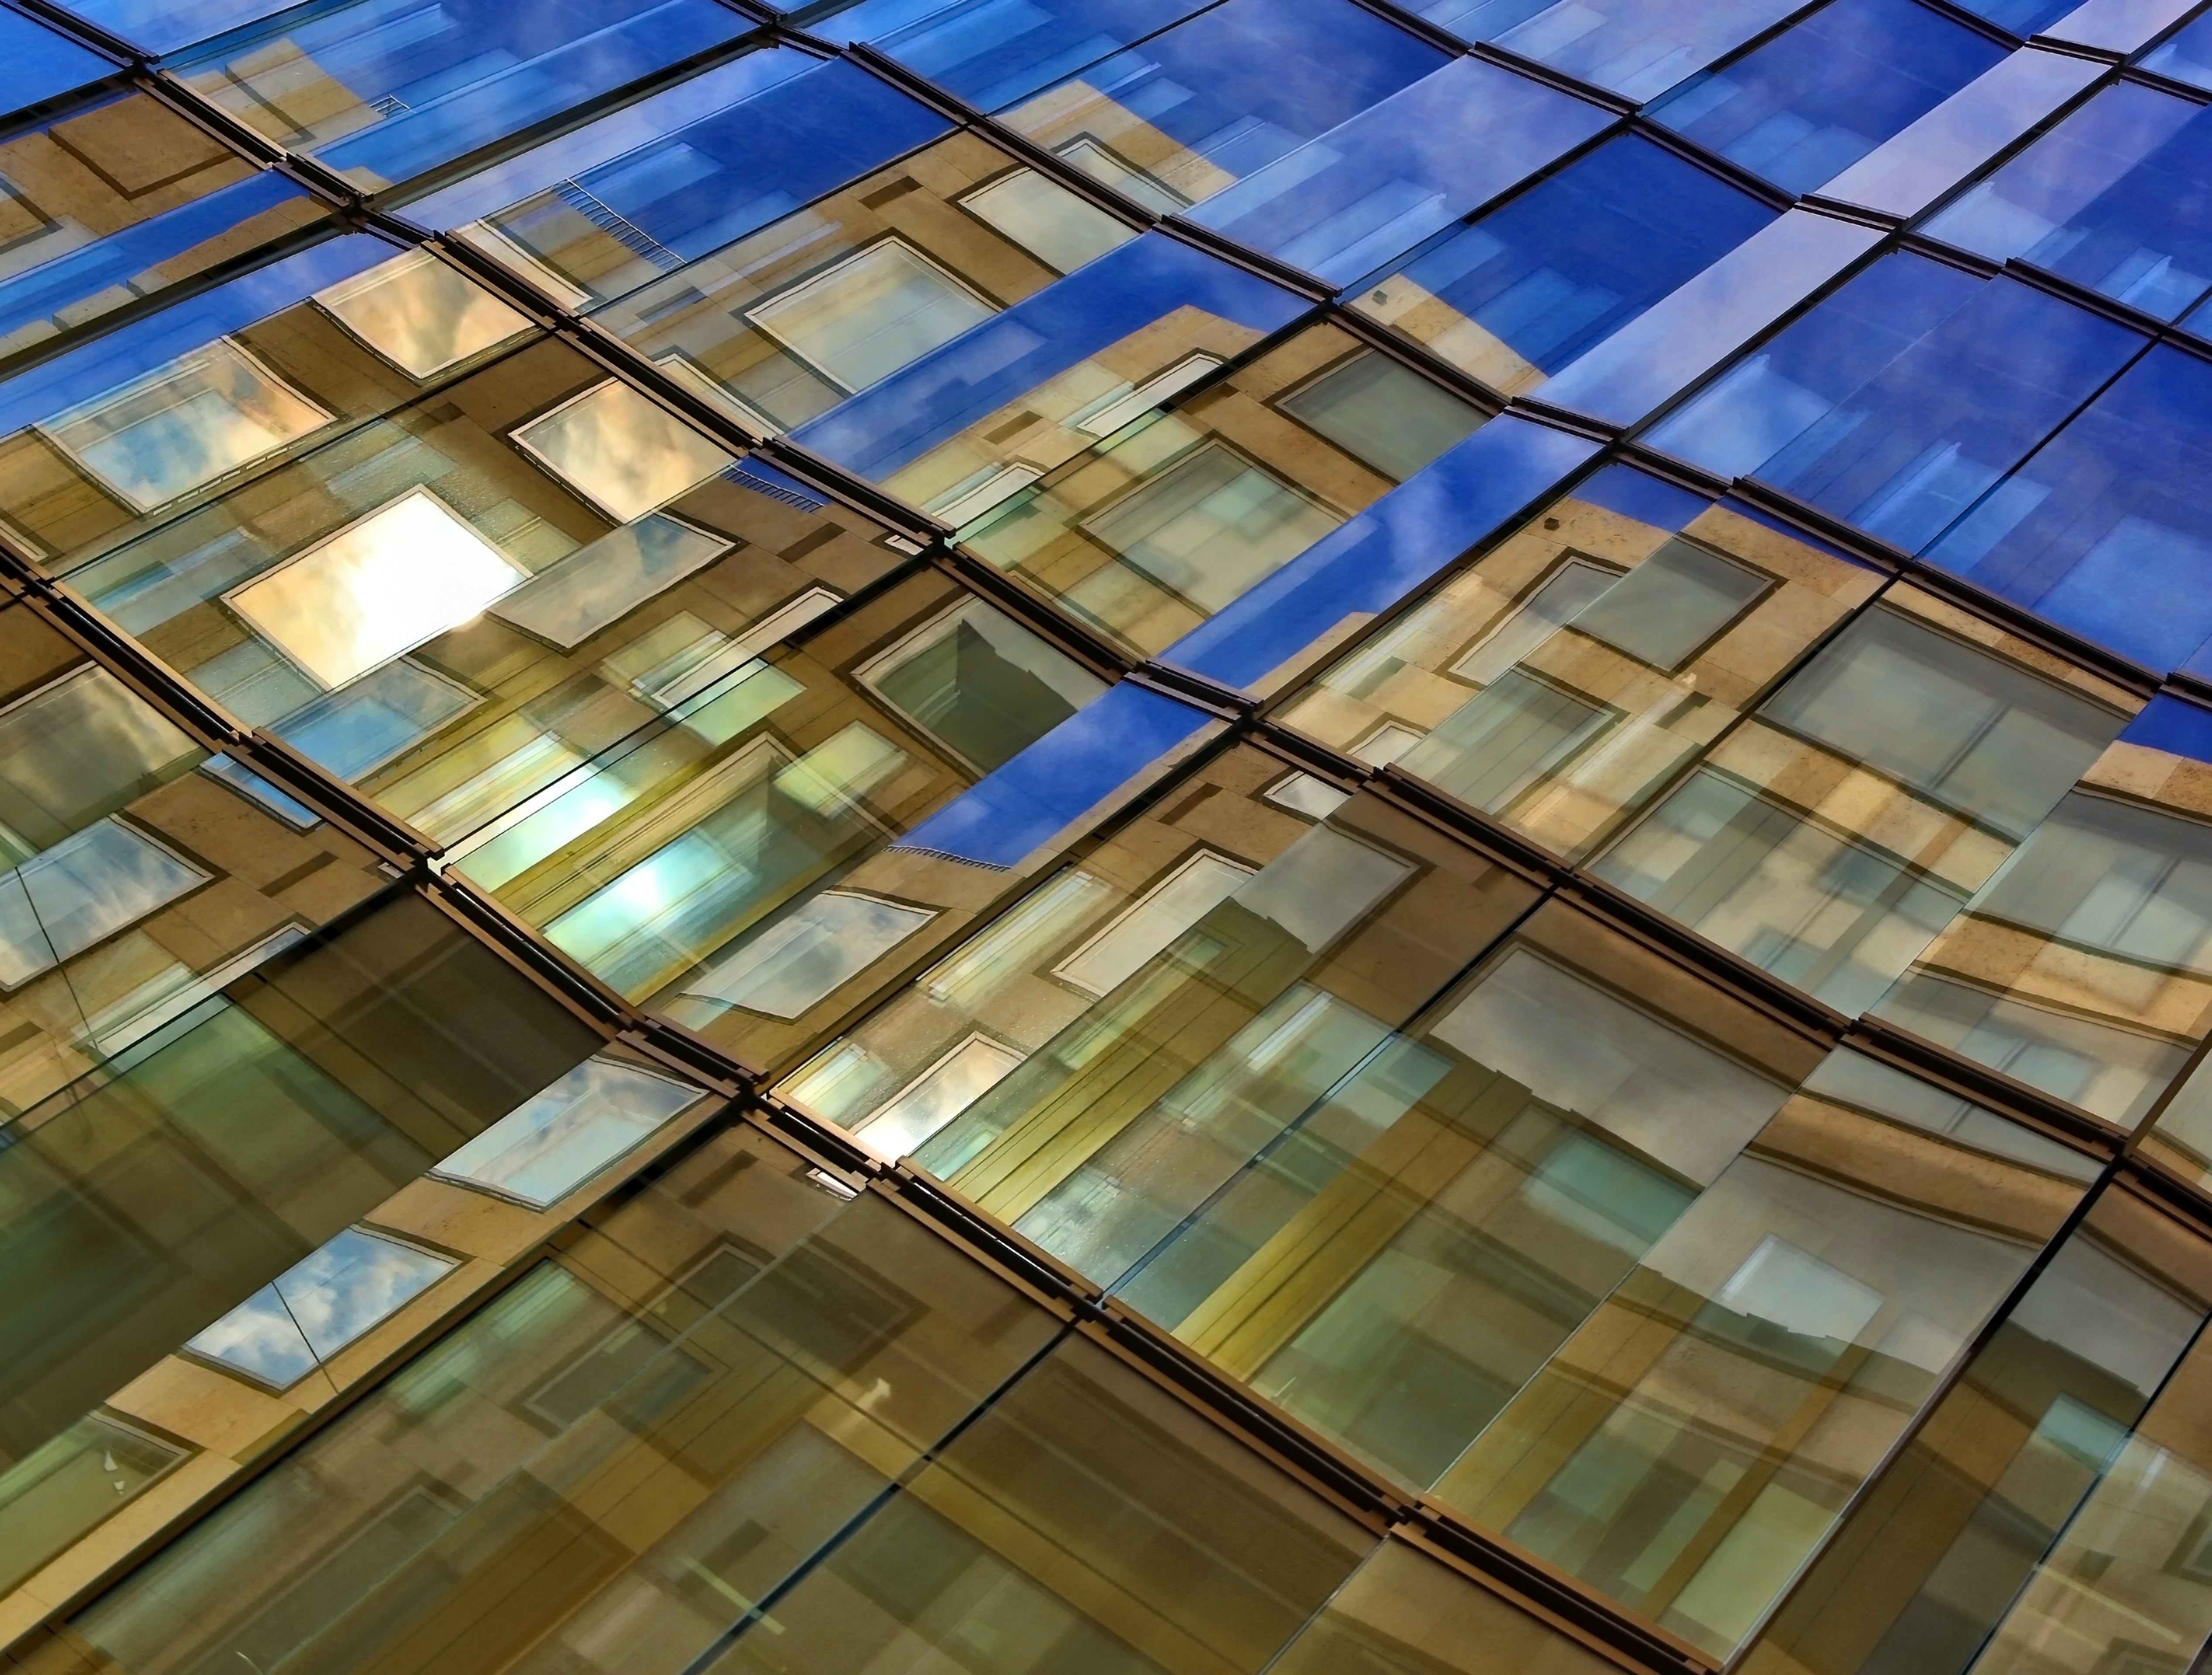 An angular shot of the glass facade of a building in Zurich